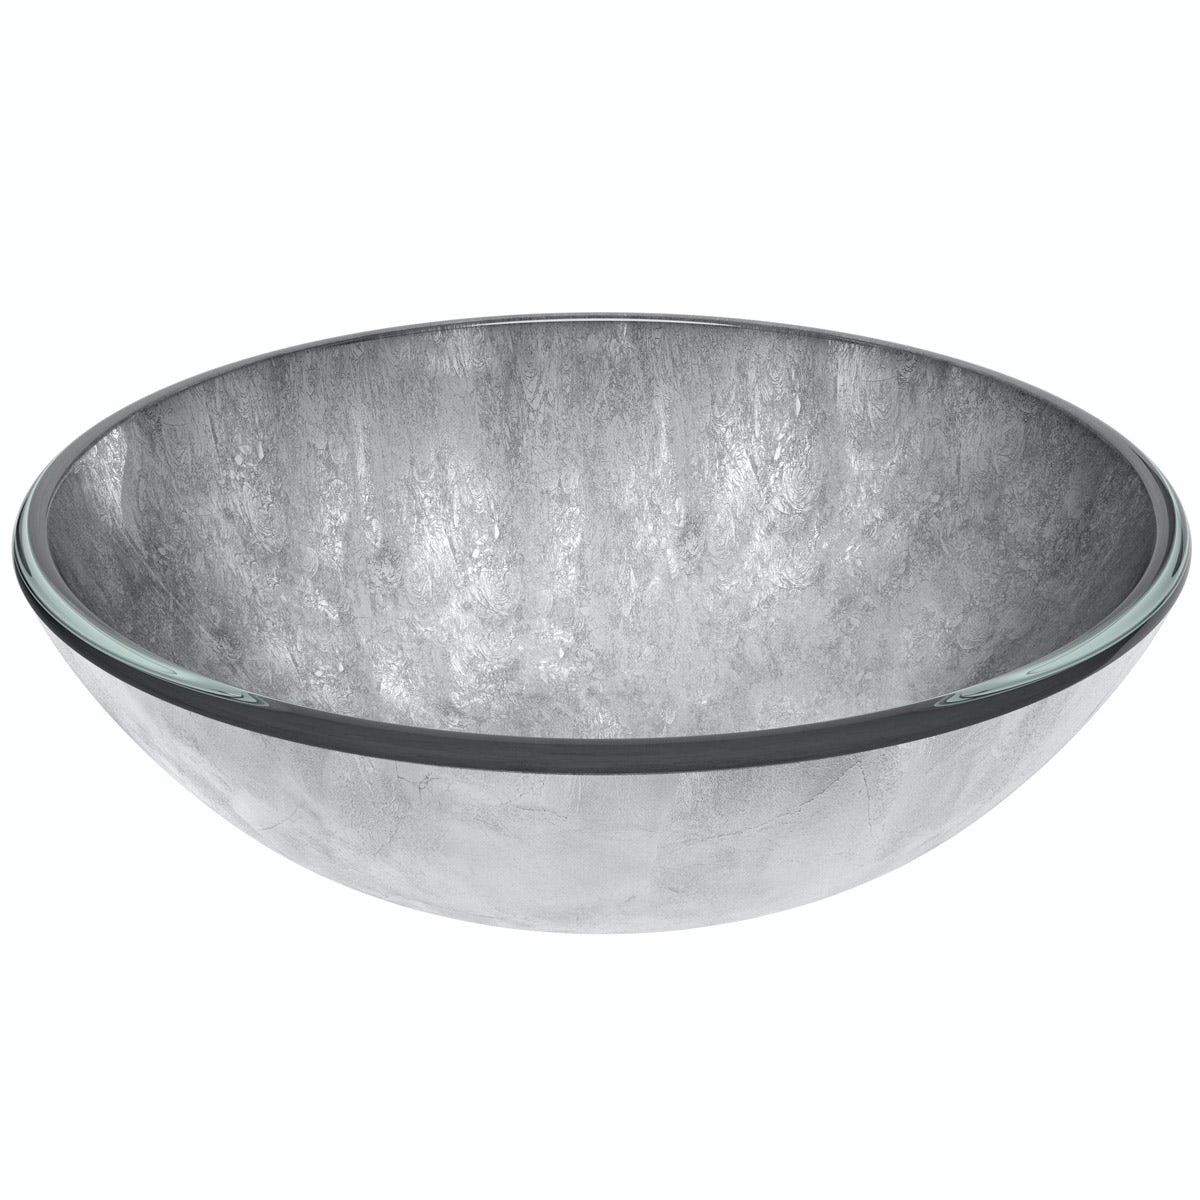 Mode Mackintosh silver foil glass countertop basin with waste